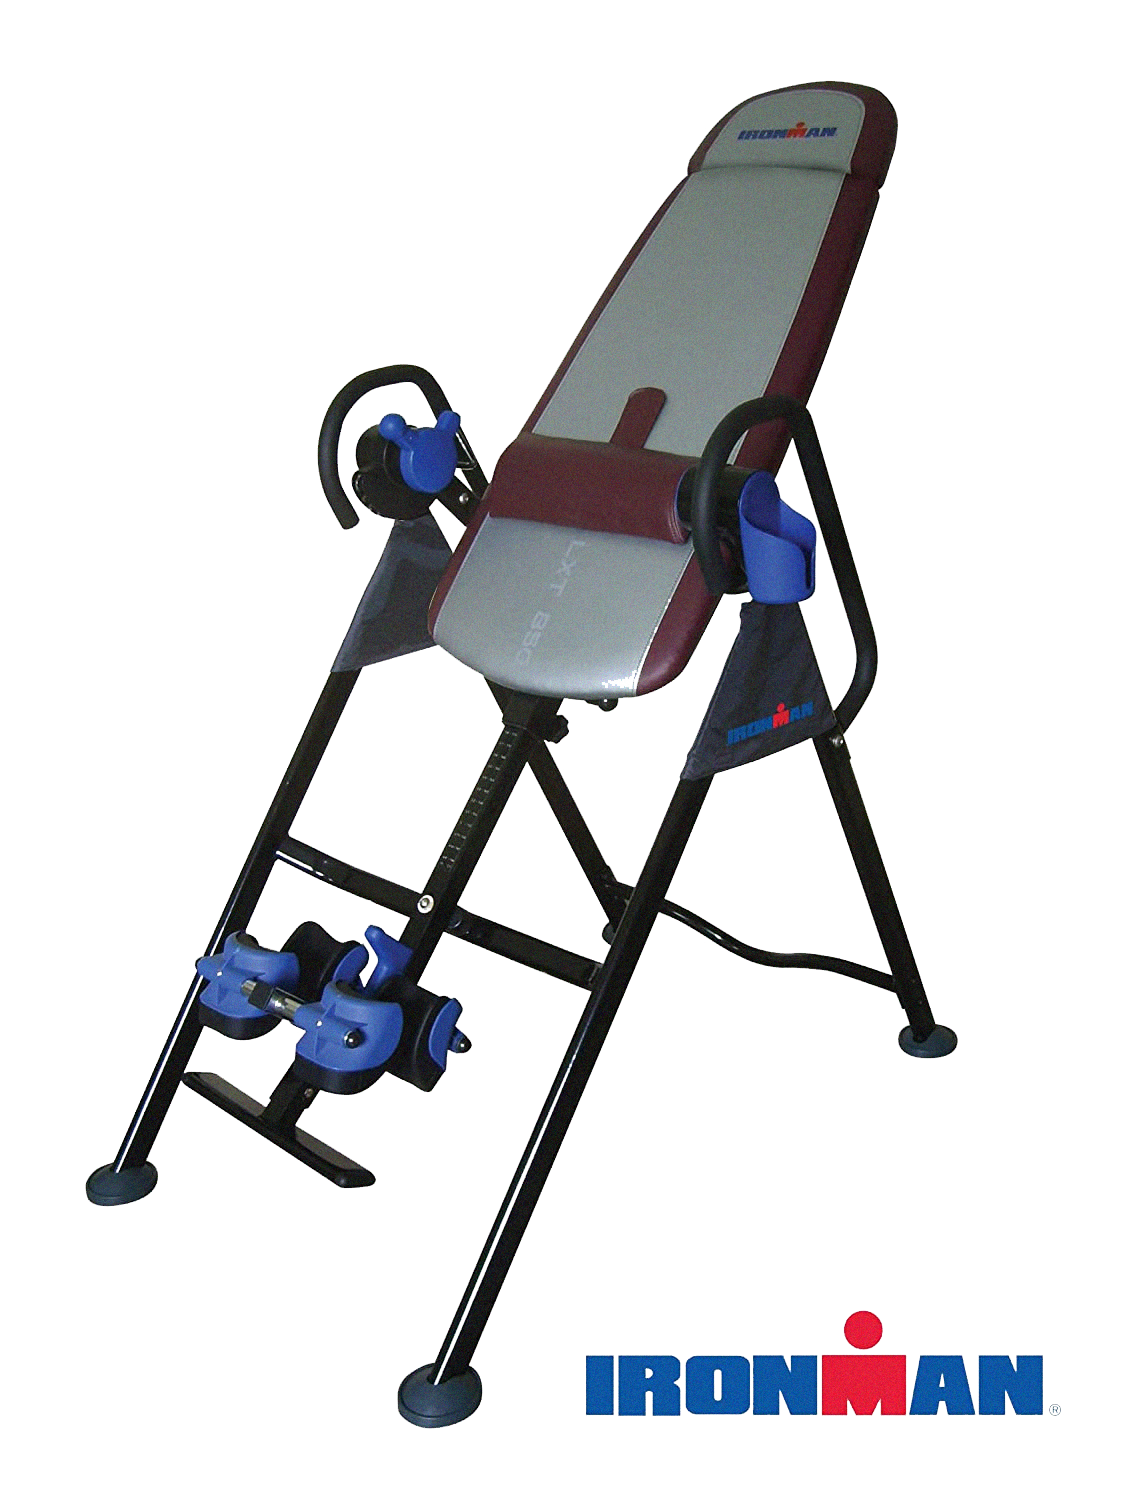 Ironman LXT850 Inversion Table